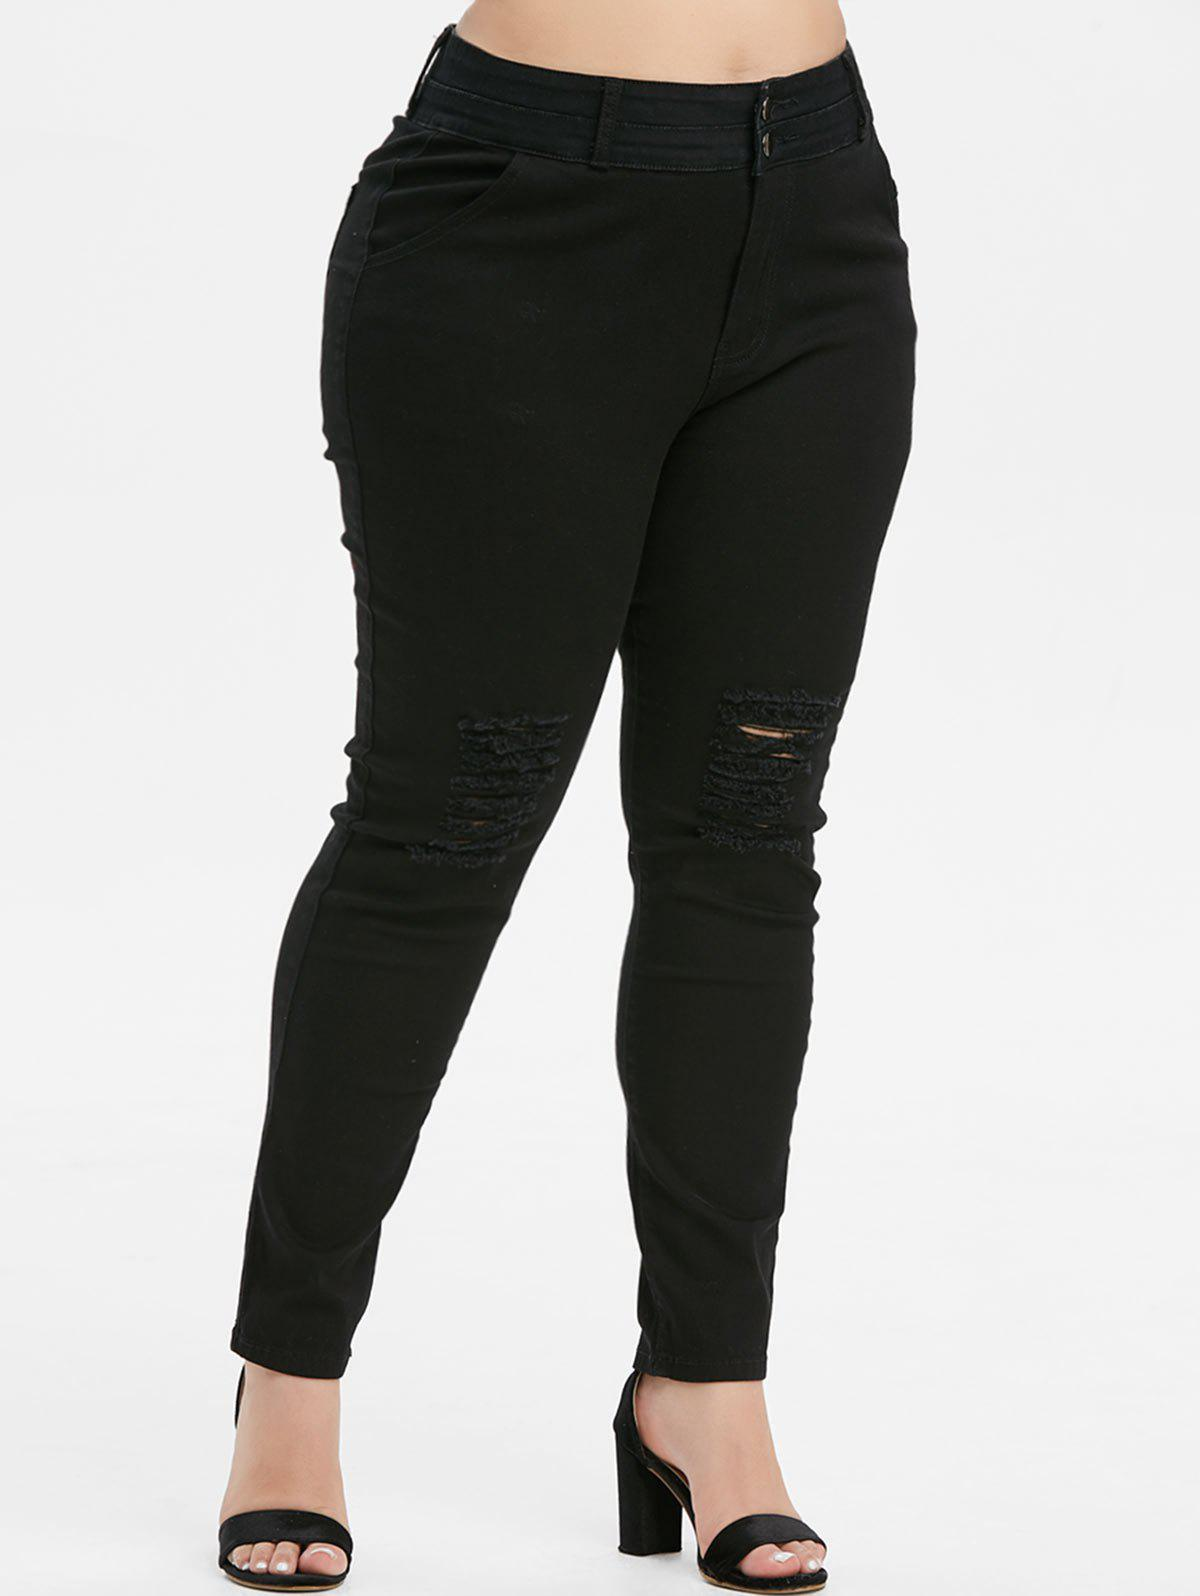 Plus Size High Rise Skinny Ripped Jeans - BLACK 5X